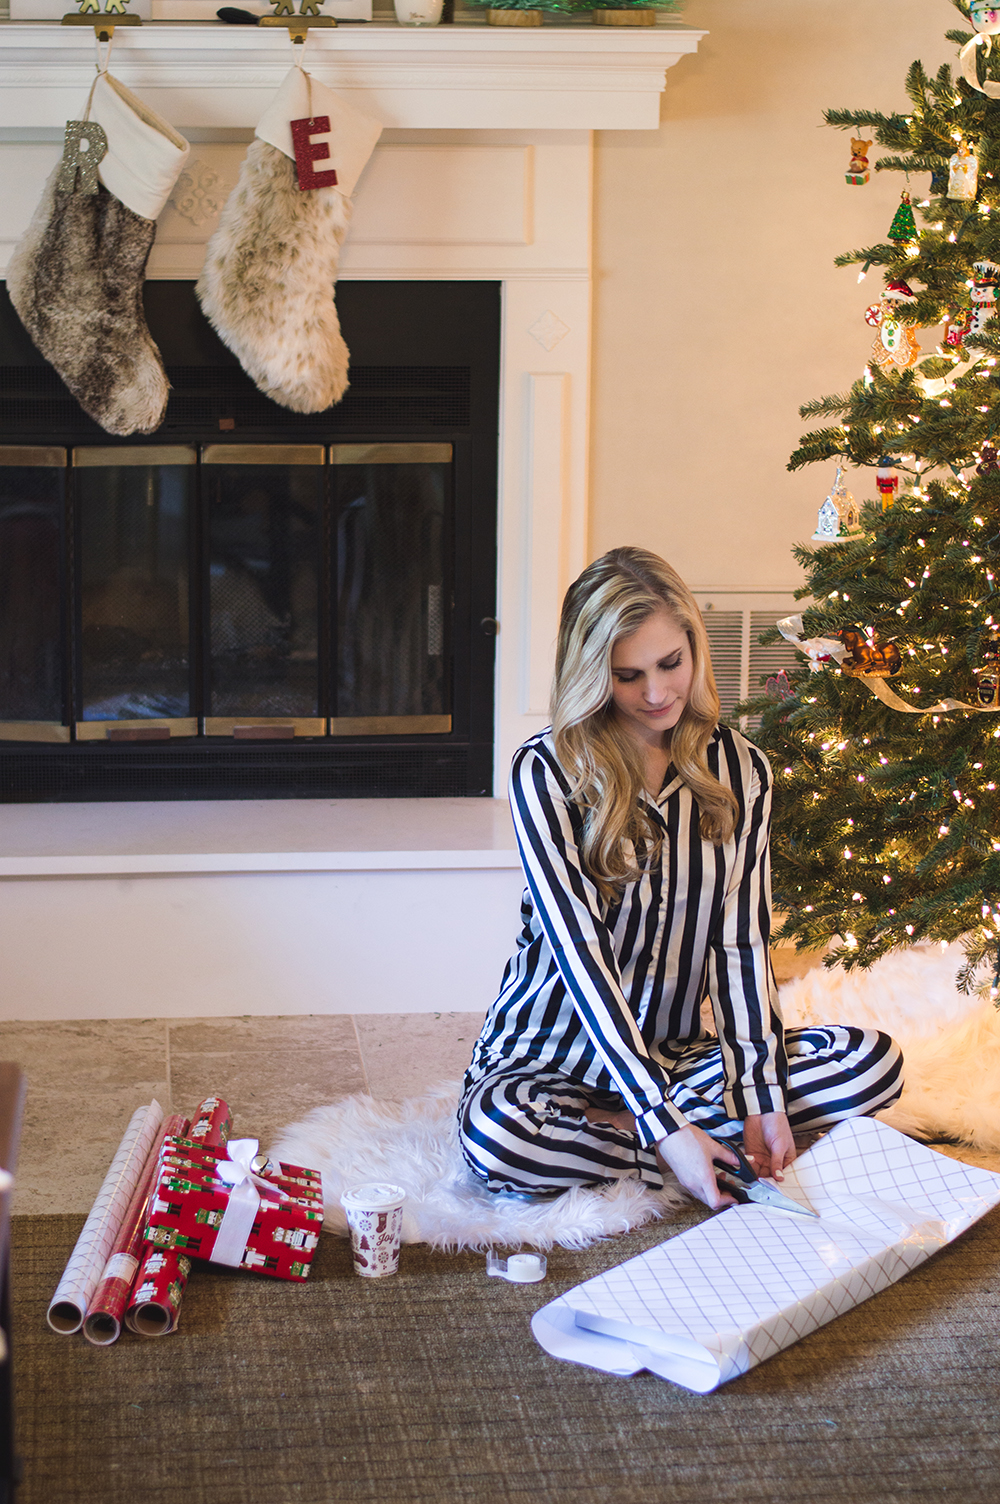 styelled-blog-fashion-blogger-style-wrapping-target-paper-christmas-gift-wrap-bows-glitter-nutcracker-tree-ornaments-stockings-pajamas-boohoo-tutorial-diy-09